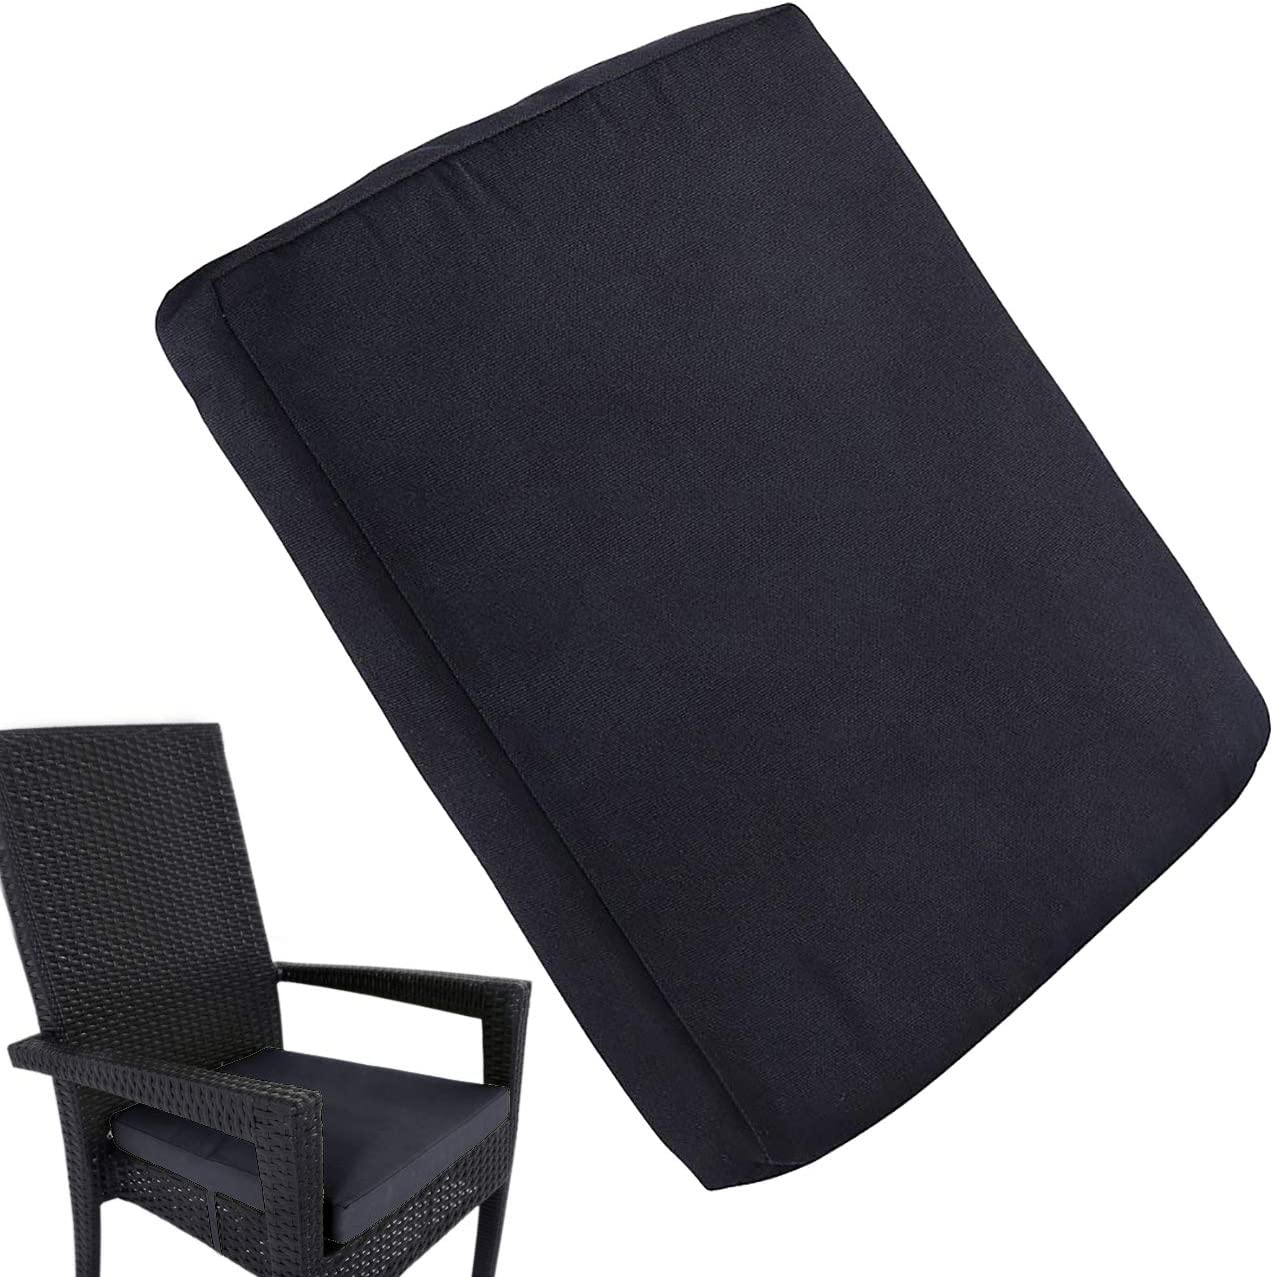 Removable Waterproof Chair Cushion Outdoor Seat Pads Tie On Garden Patio US